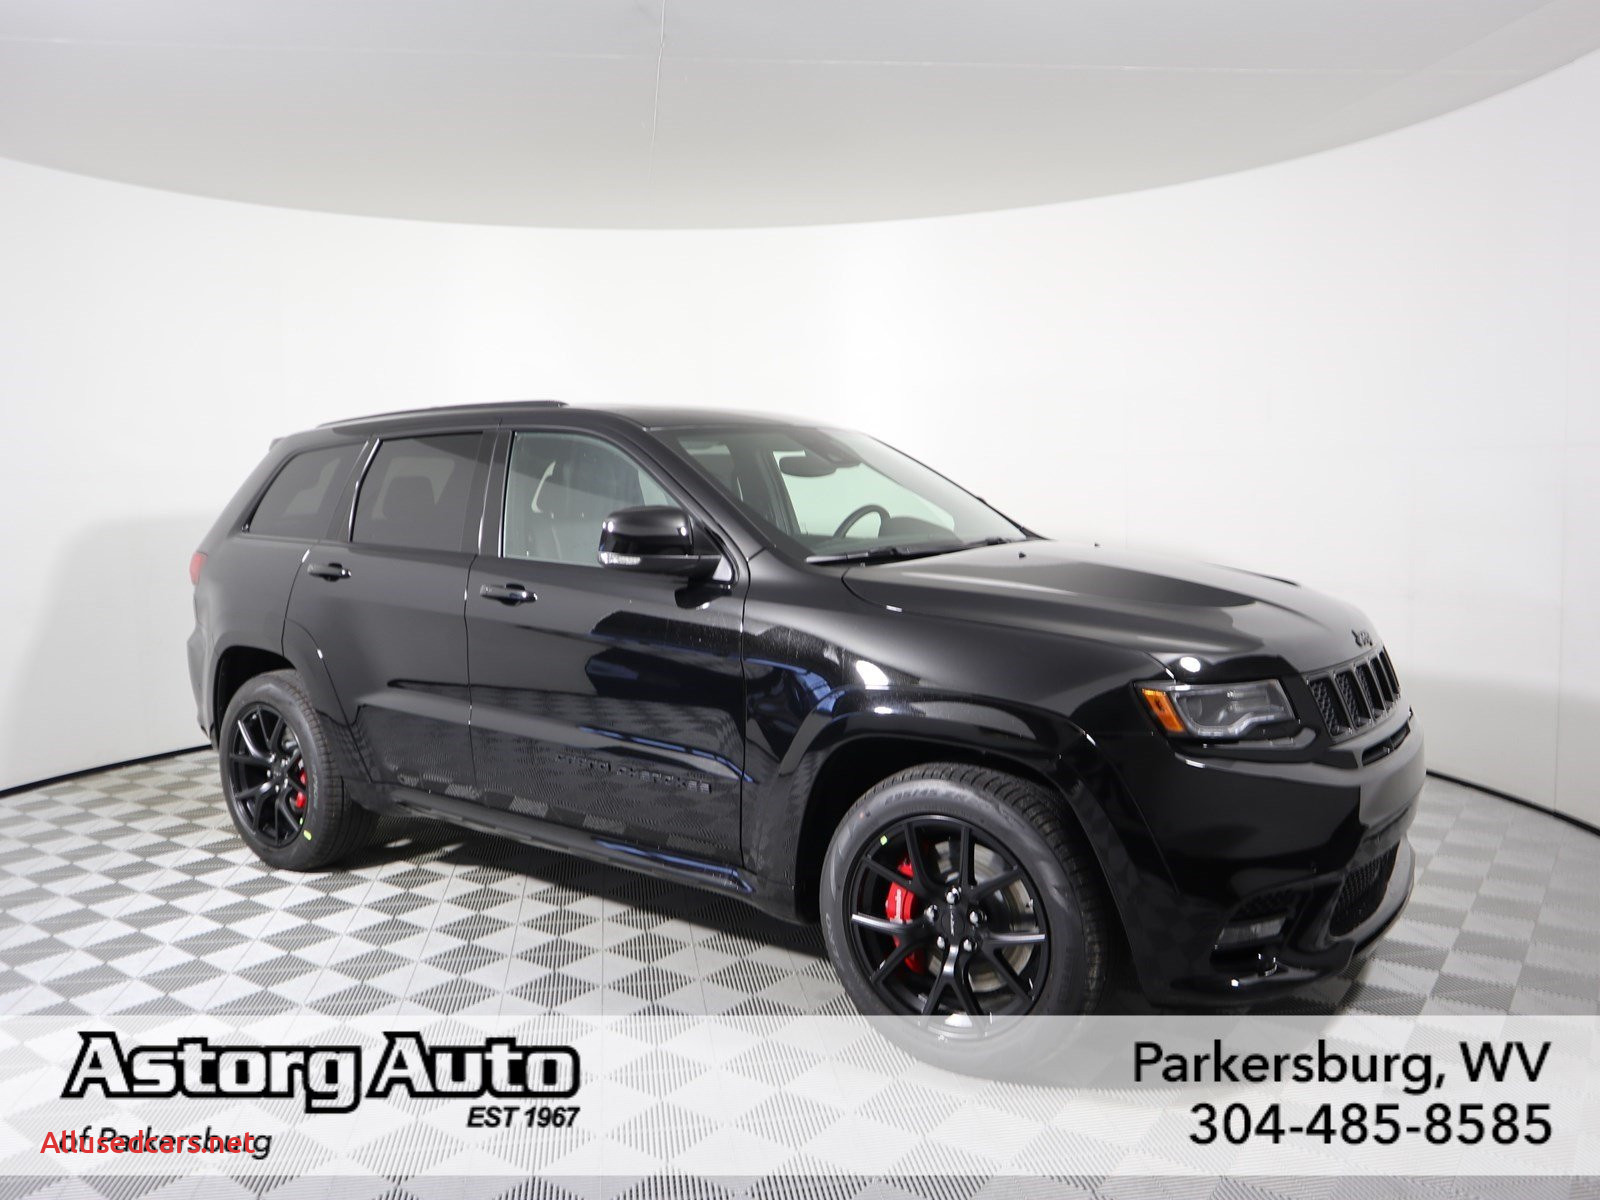 Jeep Grand Cherokee Srt8 Lovely New 2020 Jeep Grand Cherokee Srt with Navigation & 4wd